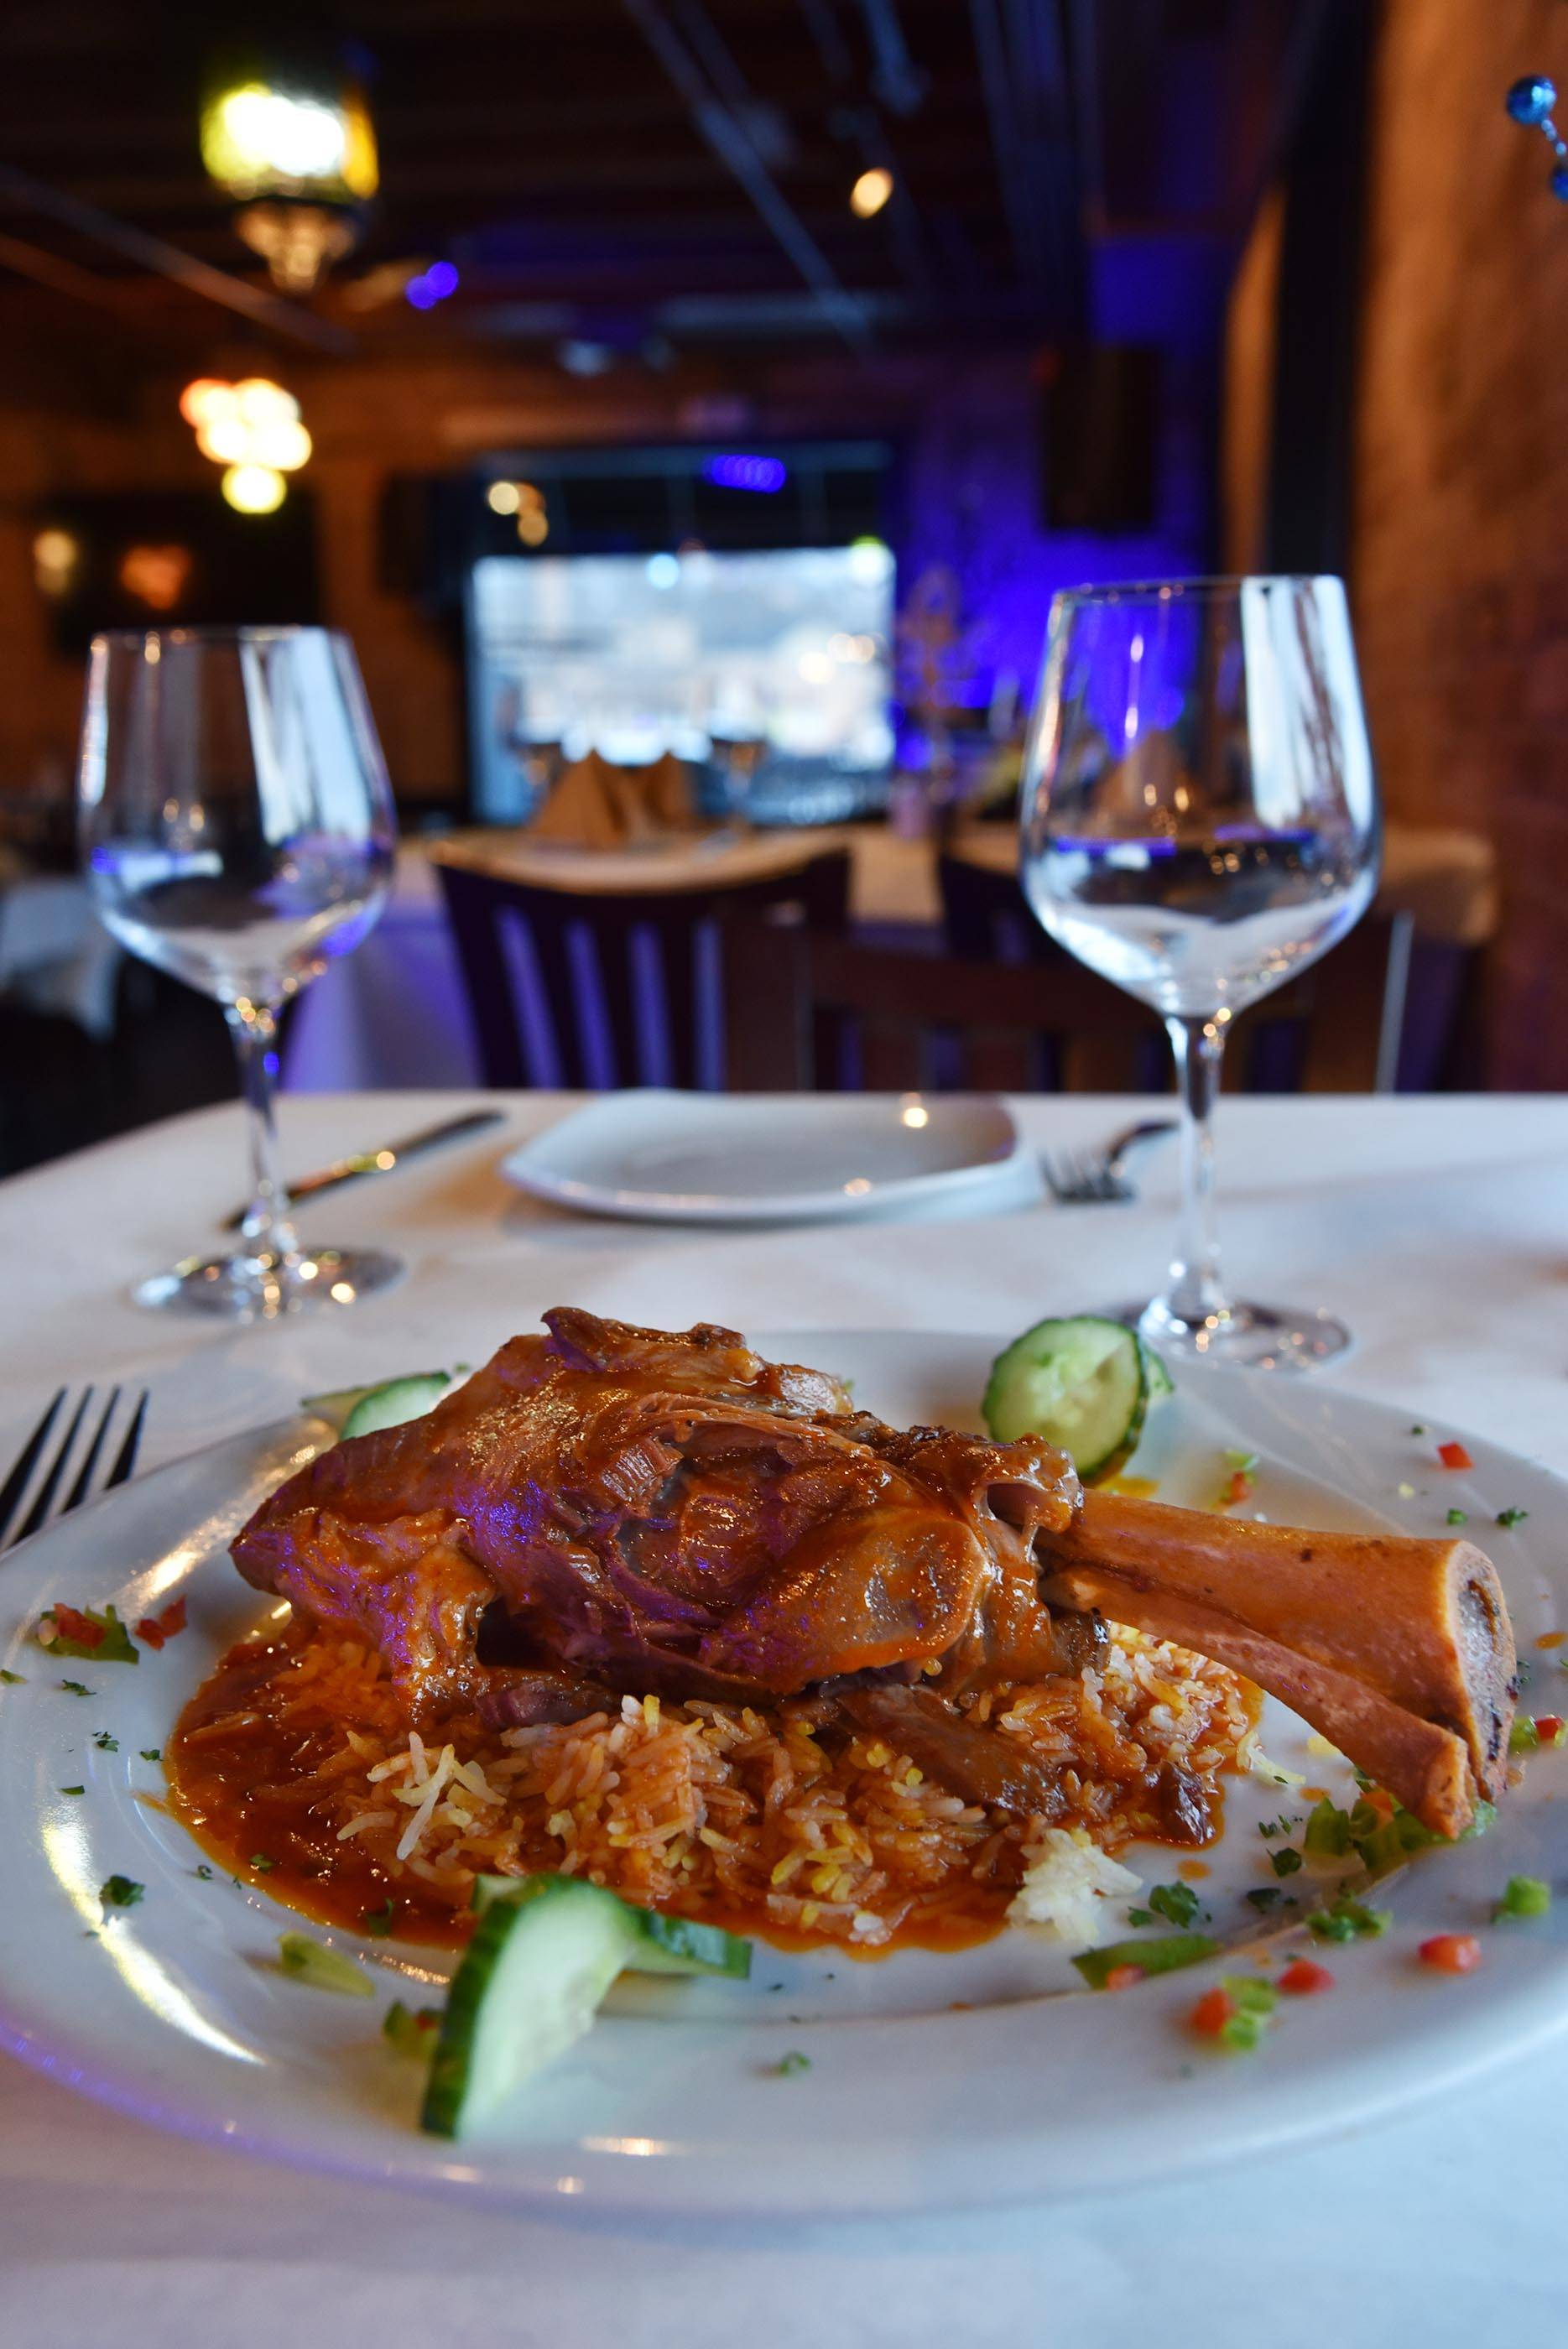 The lamb shank is served on a bed of basmati rice at Eden on the River in St. Charles.